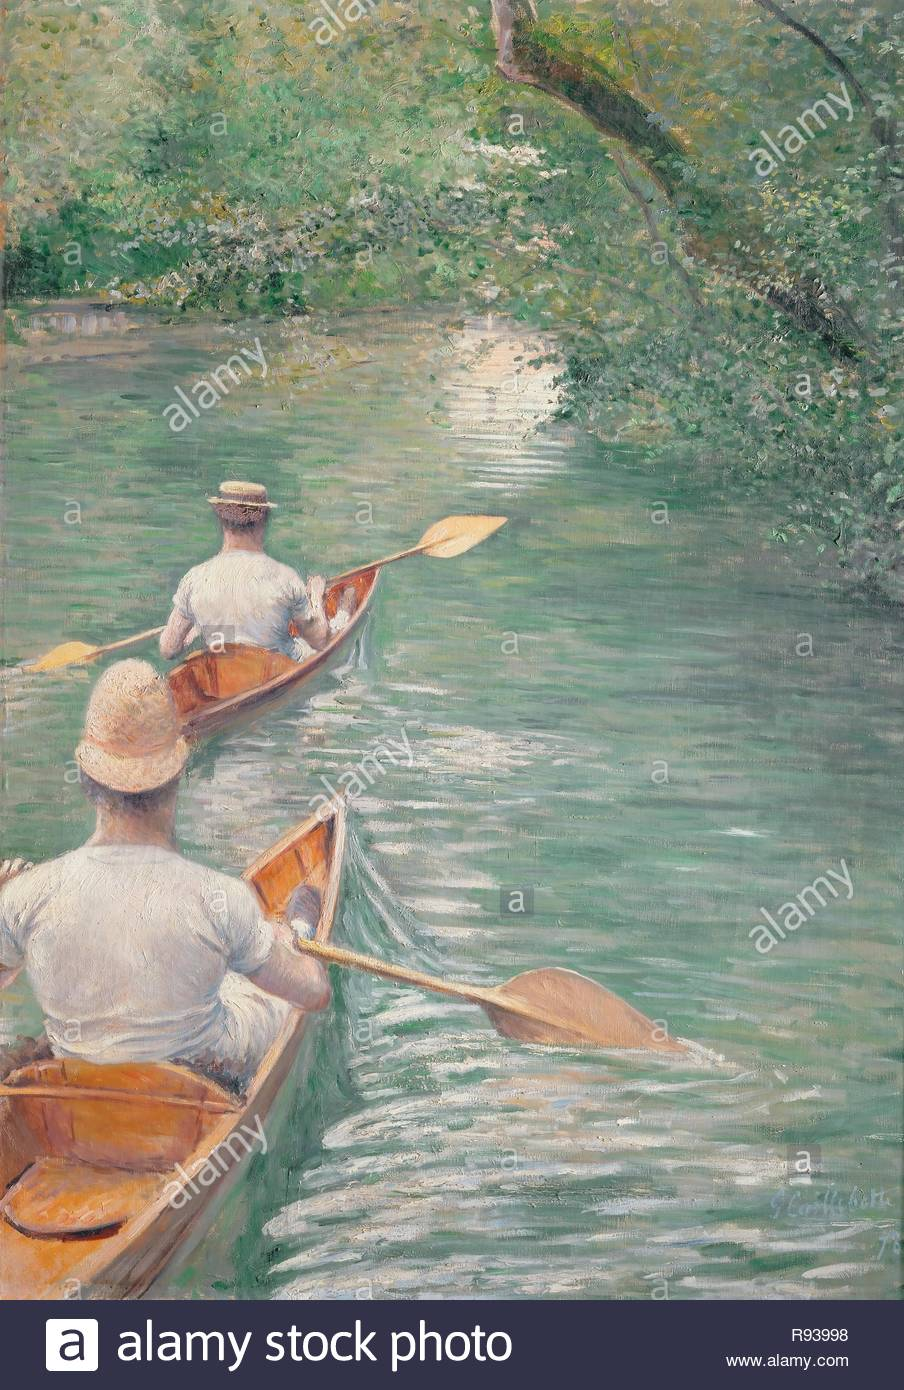 Perissoires-The canoes, 1878 Oil on canvas, 155 x 108 cm. Author: CAILLEBOTTE, GUSTAVE. Location: Musee des Beaux-Arts, Rennes, France. - Stock Image